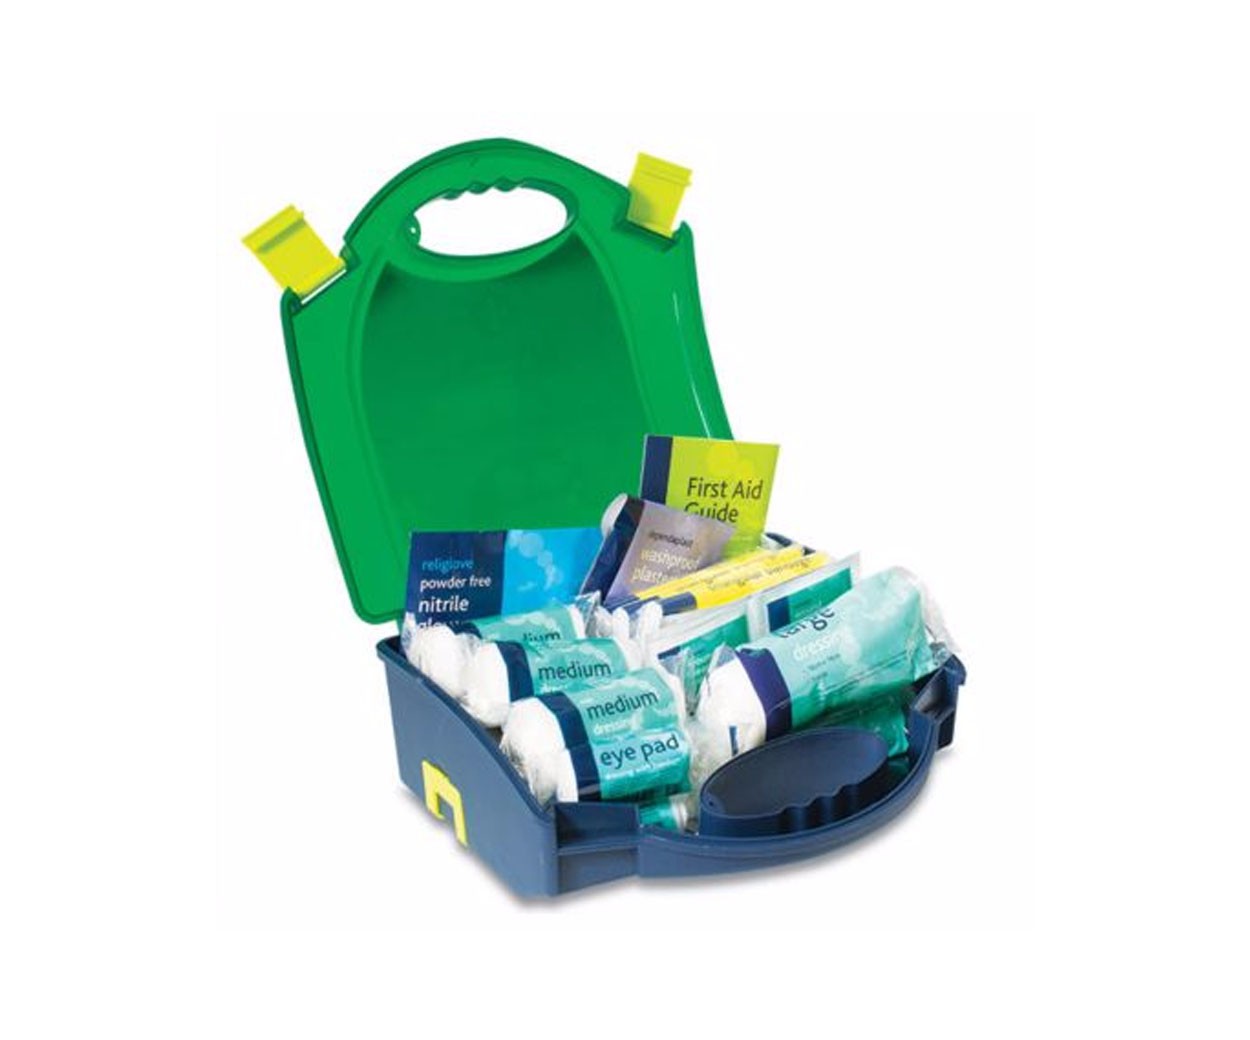 Stationery Clearance - First Aid Kit